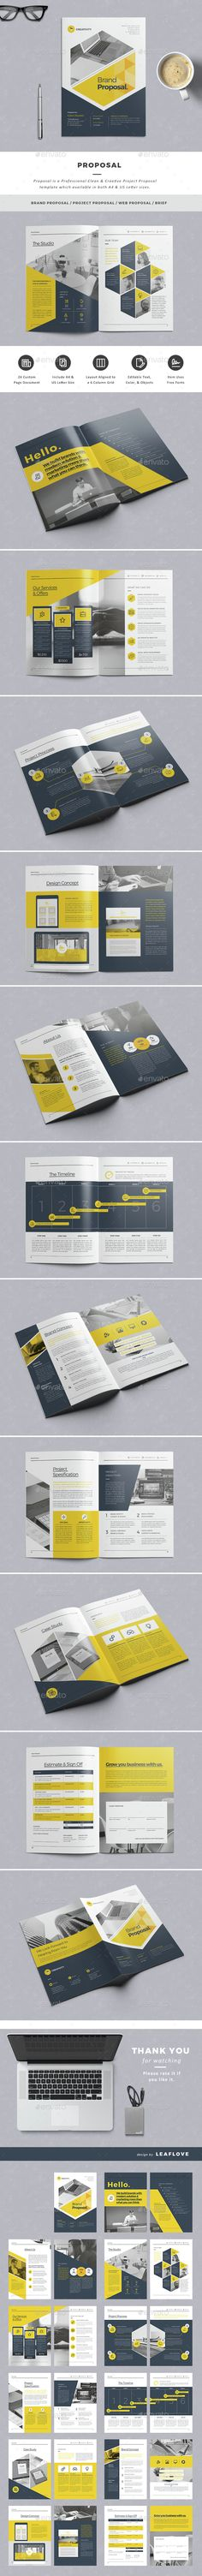 Three Rings Project Proposal Template Proposal templates - project proposal sample